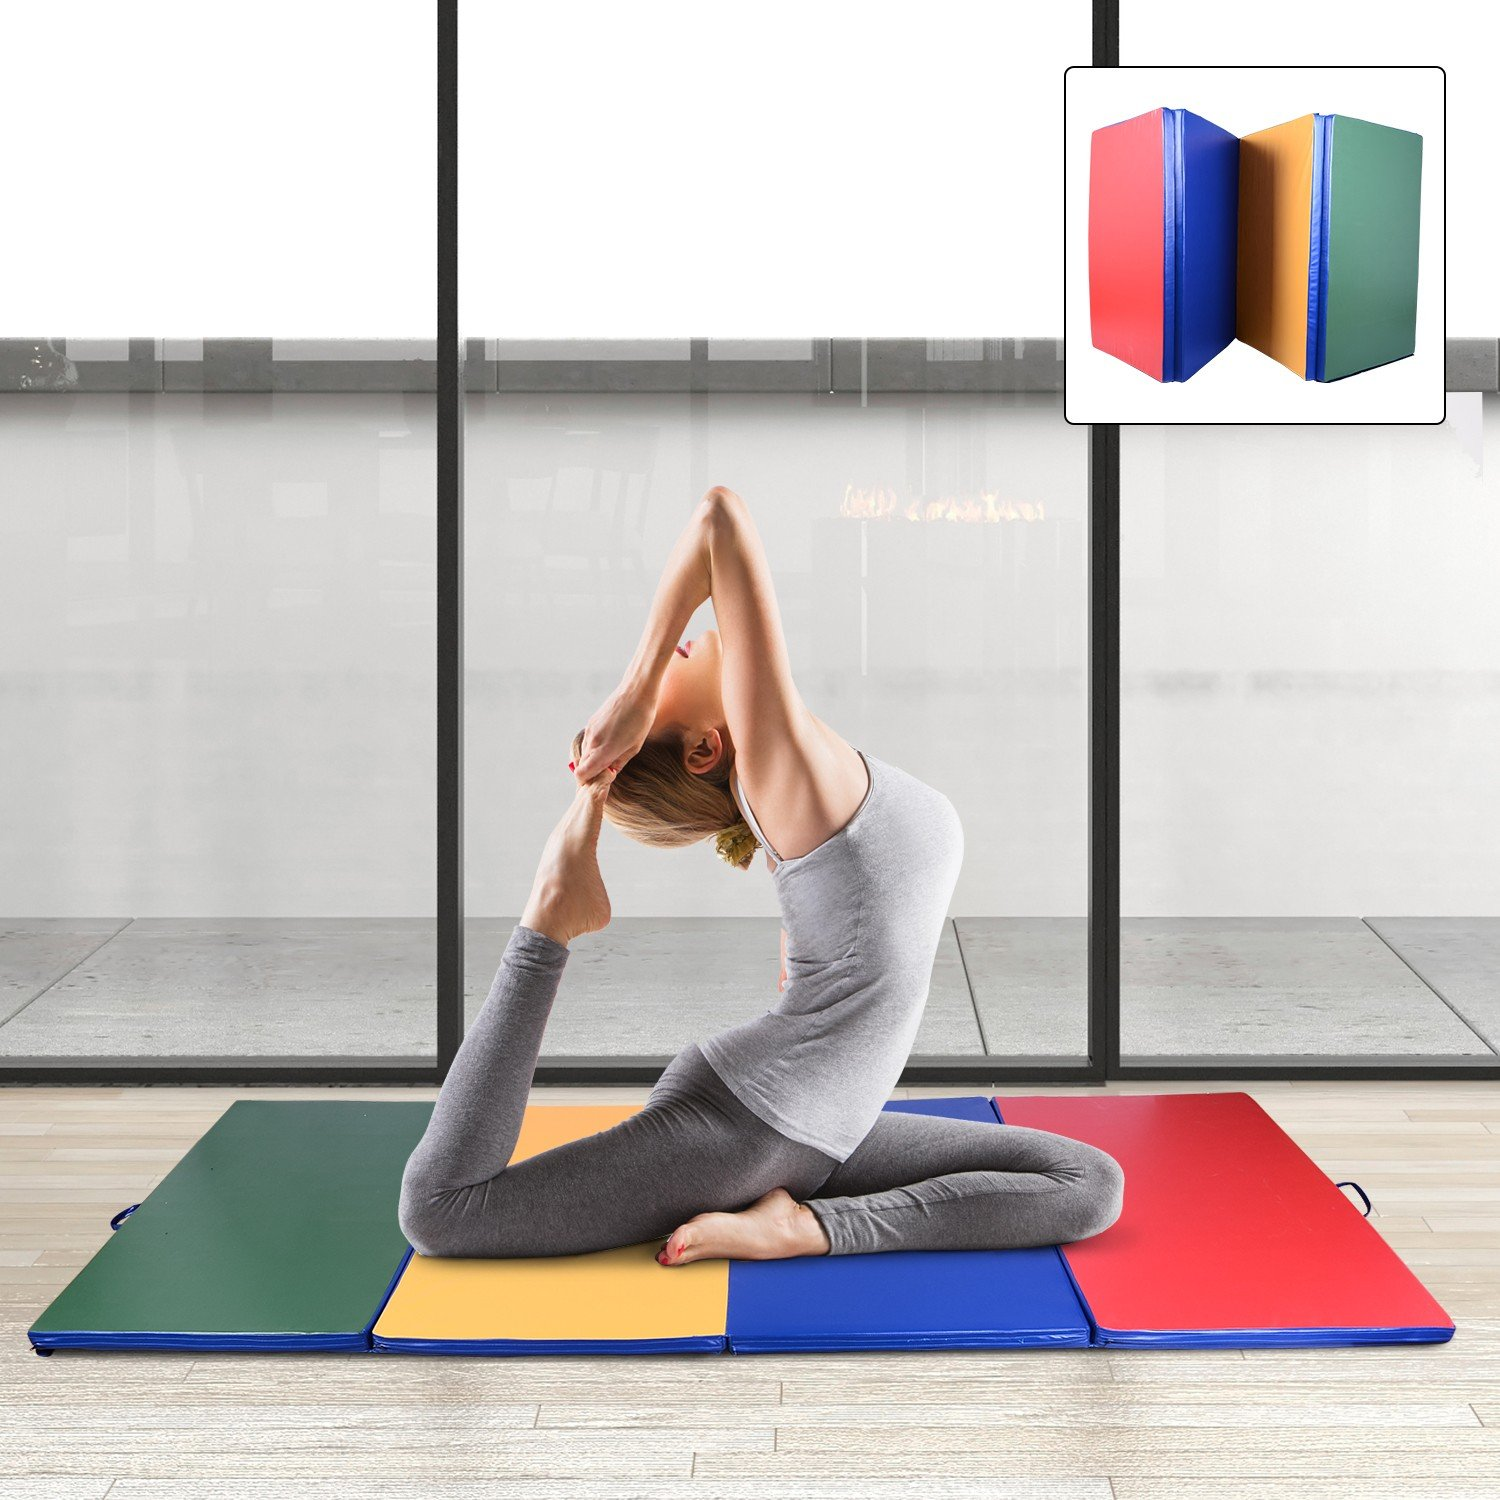 Multicolor Gymnastics Mat 4' x 10' x 2'' Martial Arts Aerobics Exercise Yoga Tumbling Pad With Ebook by MRT SUPPLY